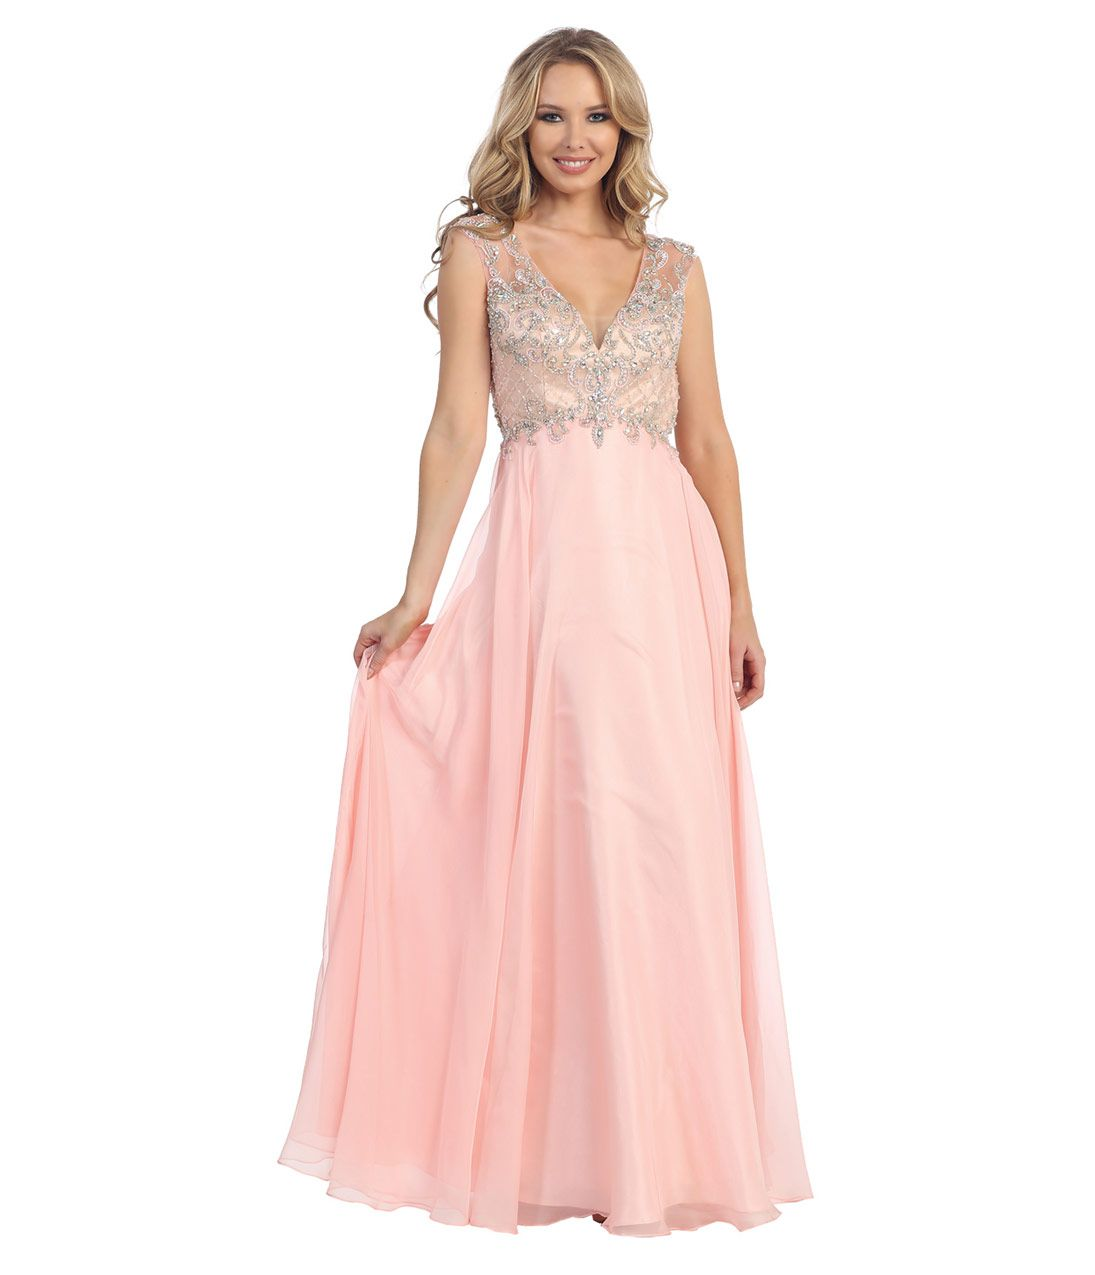 100 + Great Gatsby Prom Dresses for Sale | Chiffon gown, Prom and Gowns